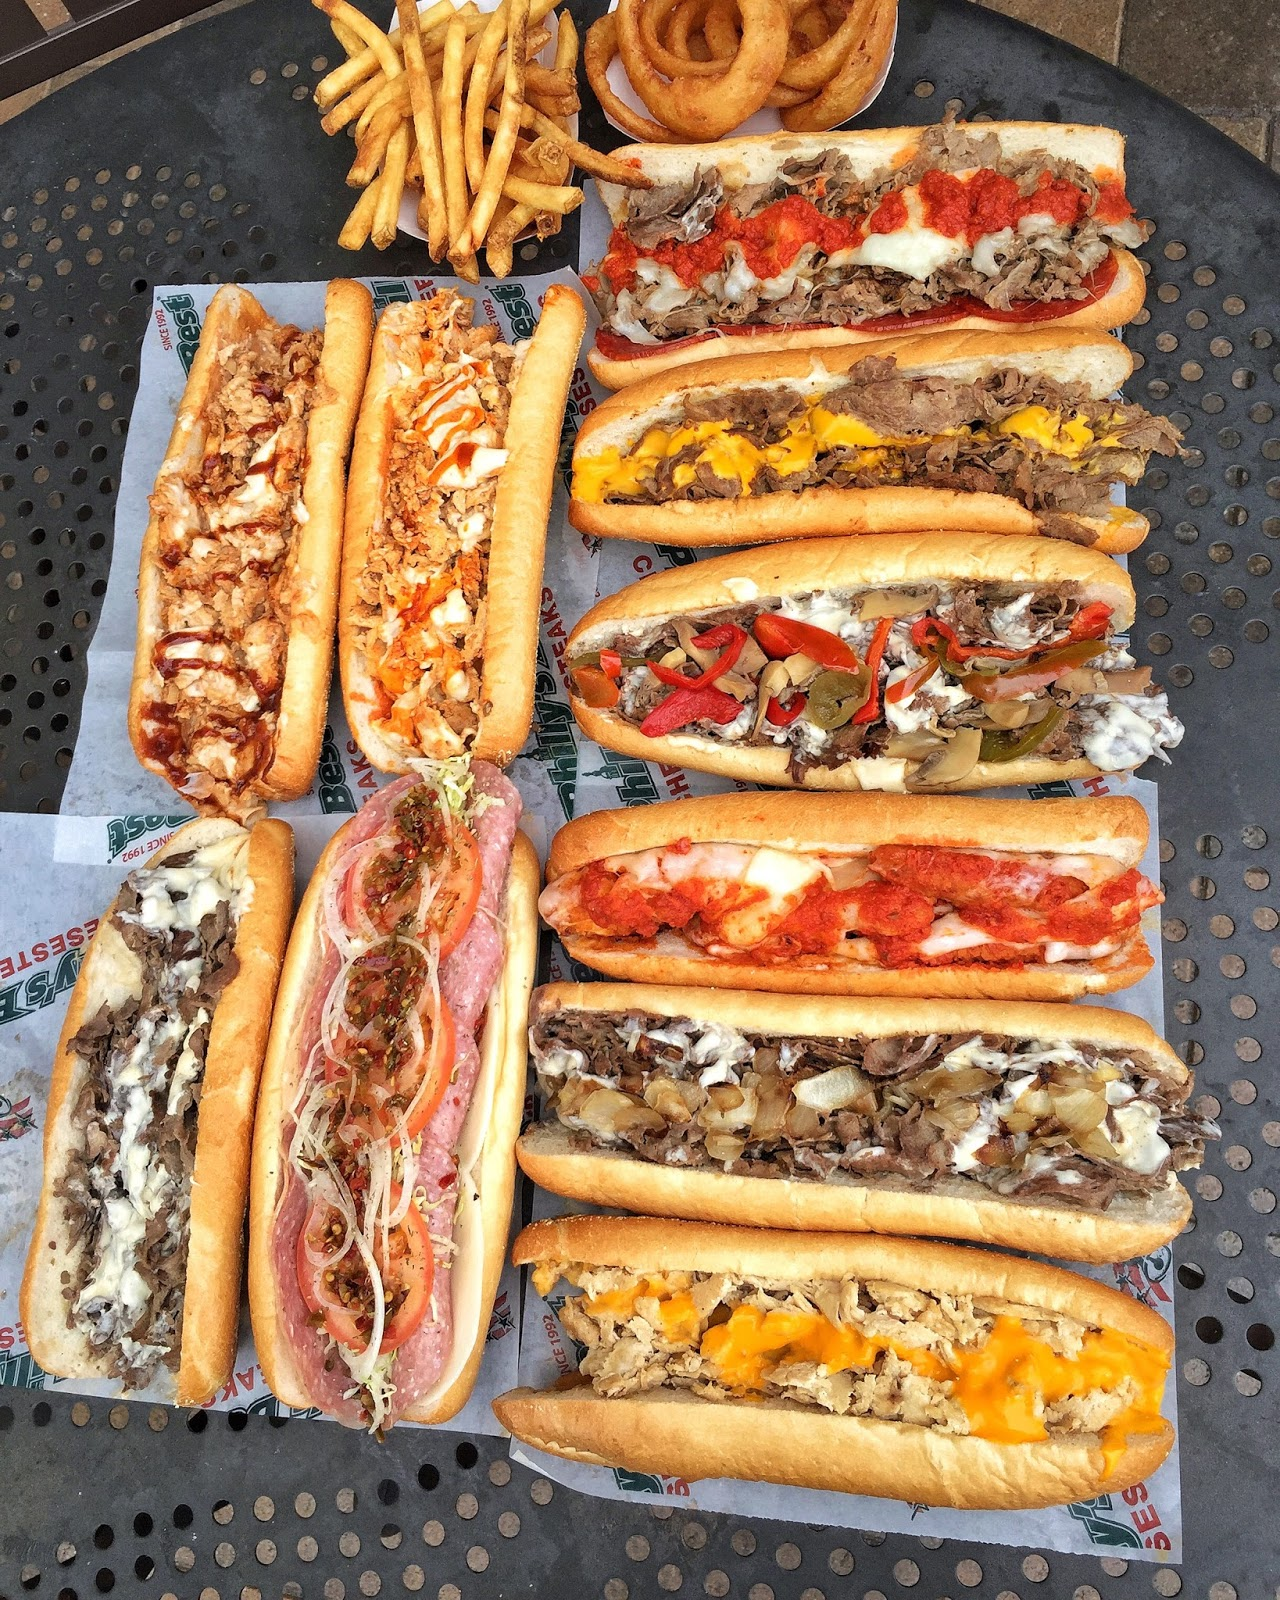 Mar. 24 | Philly's Best Offers Cheese Steaks For Just $5.99 All Day!